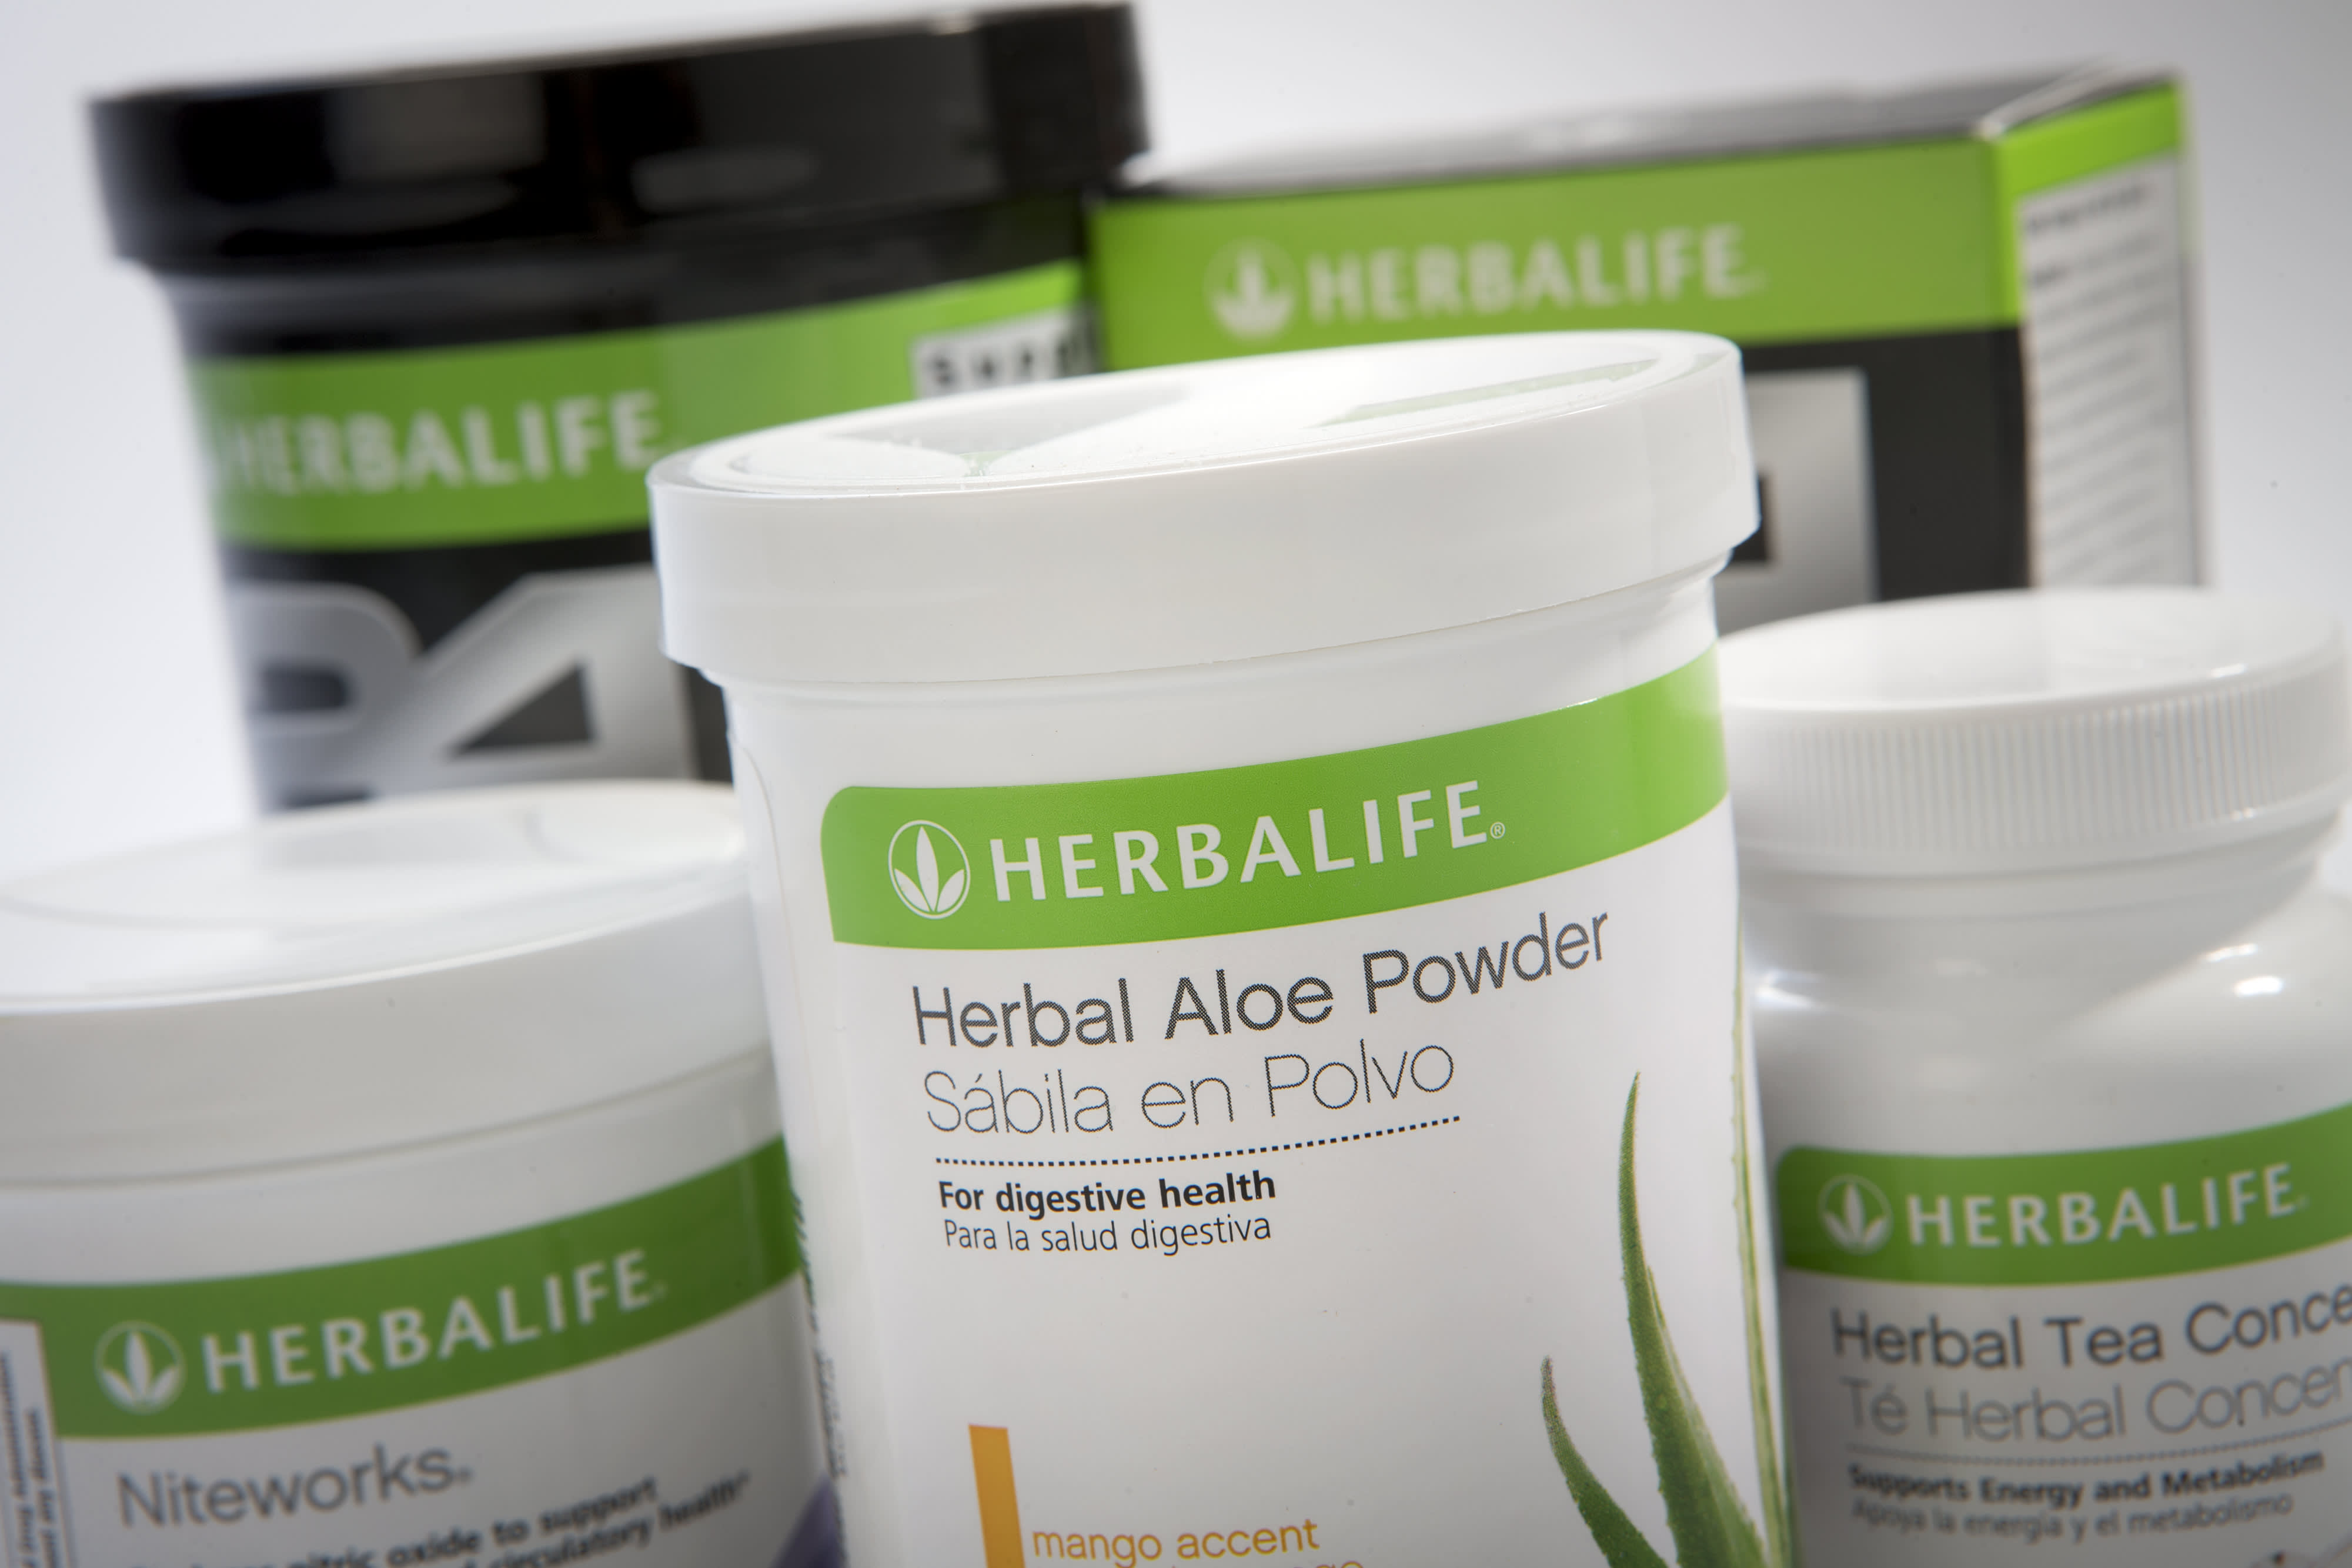 Herbalife may have misled investors, SEC on impact of FTC ...